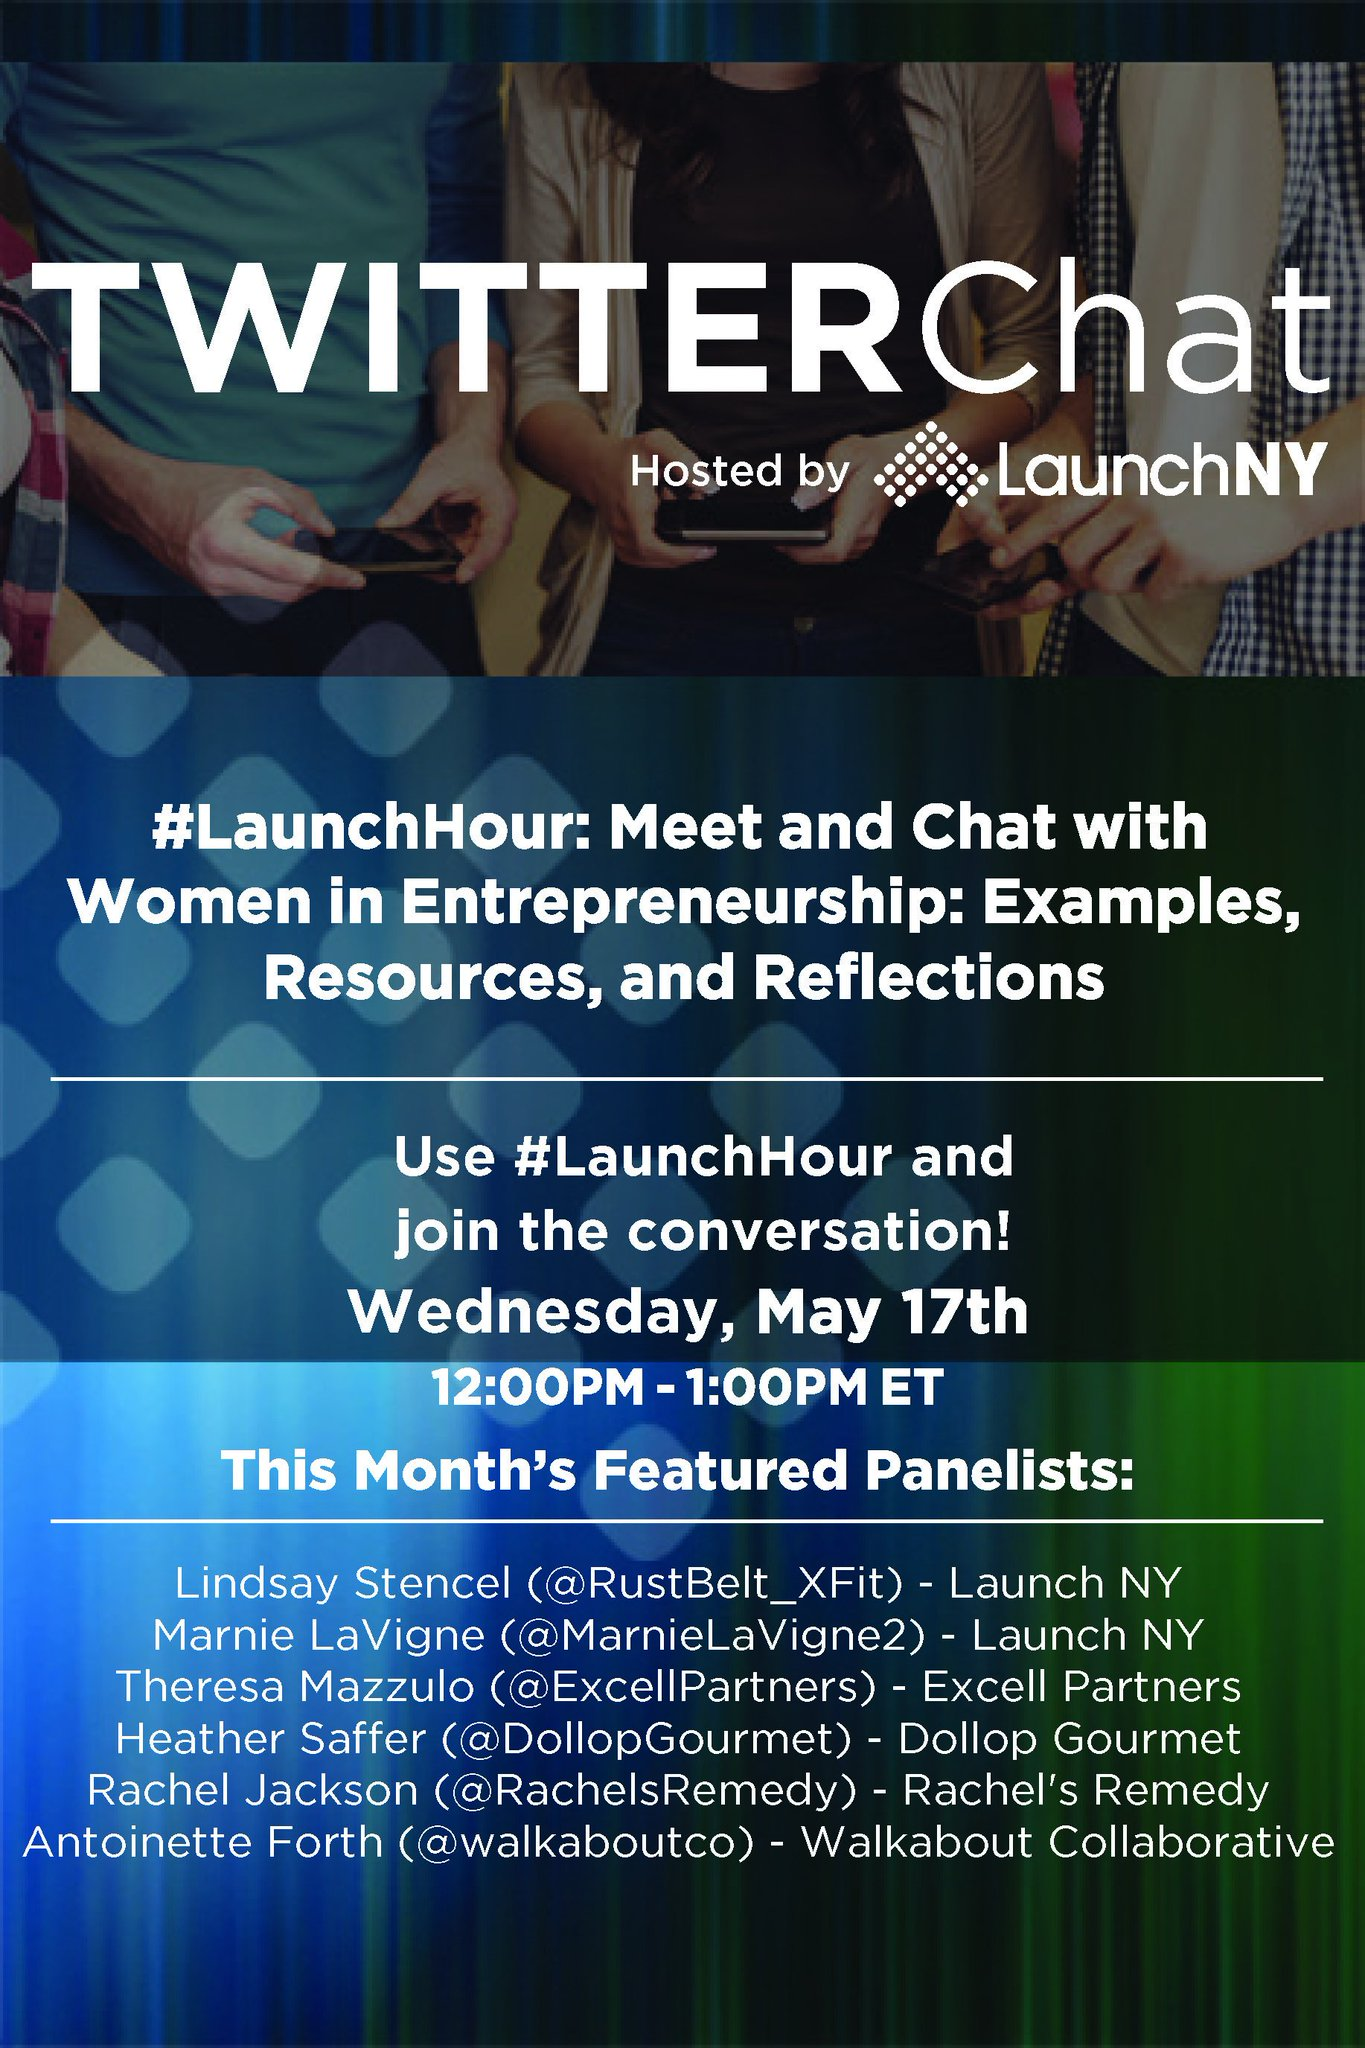 Are you joining us today on #LaunchHour @ noon? We have a great lineup of #FemaleFounders and funders on today! Let us know you'll be there! https://t.co/uYr2ISkIfJ